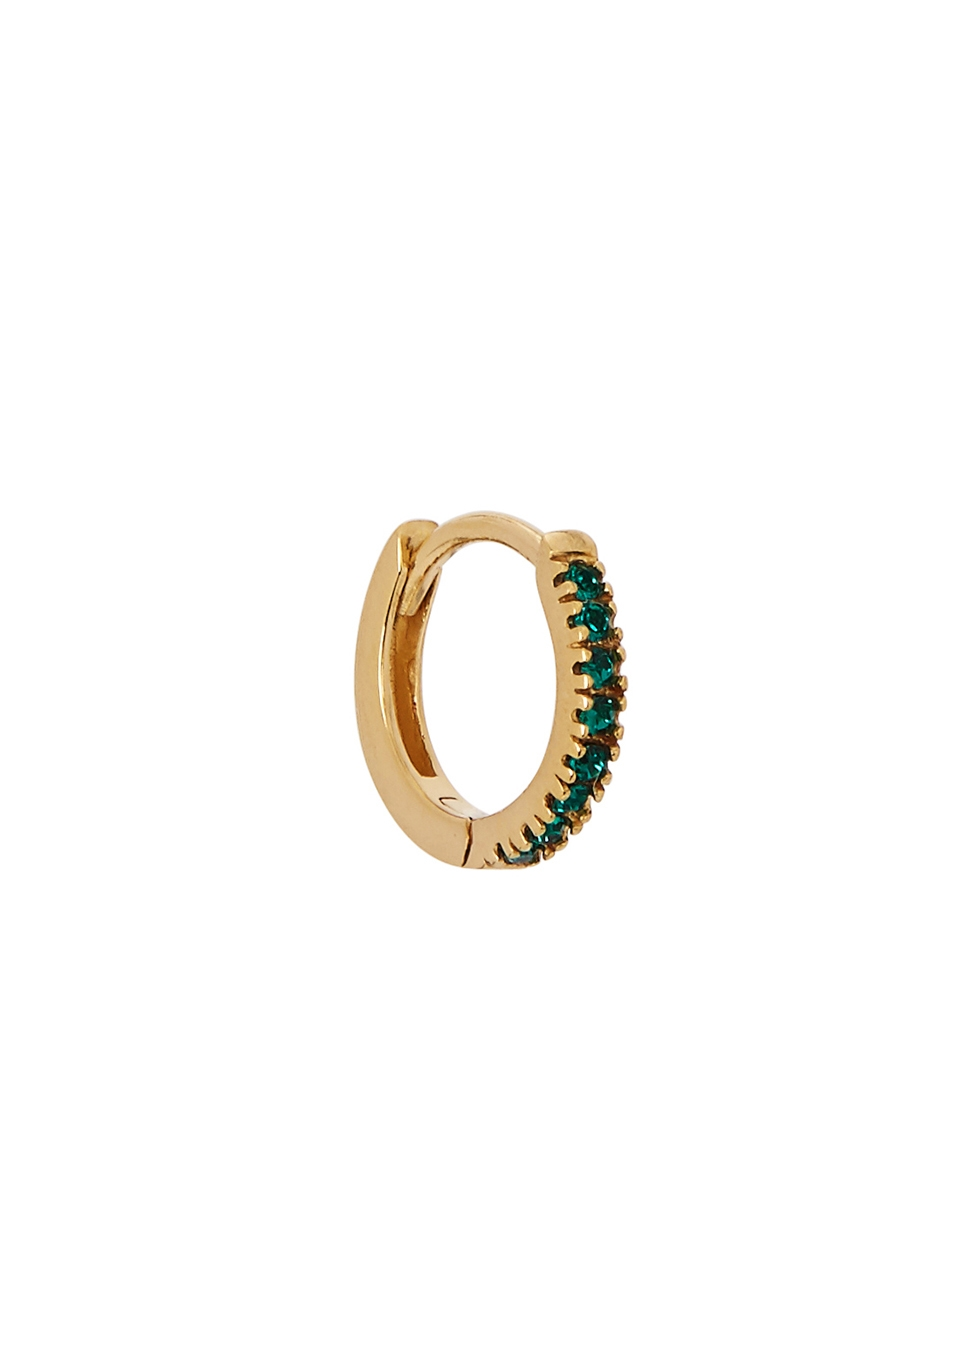 ROSIE FORTESCUE 18CT GOLD-PLATED SINGLE HOOP